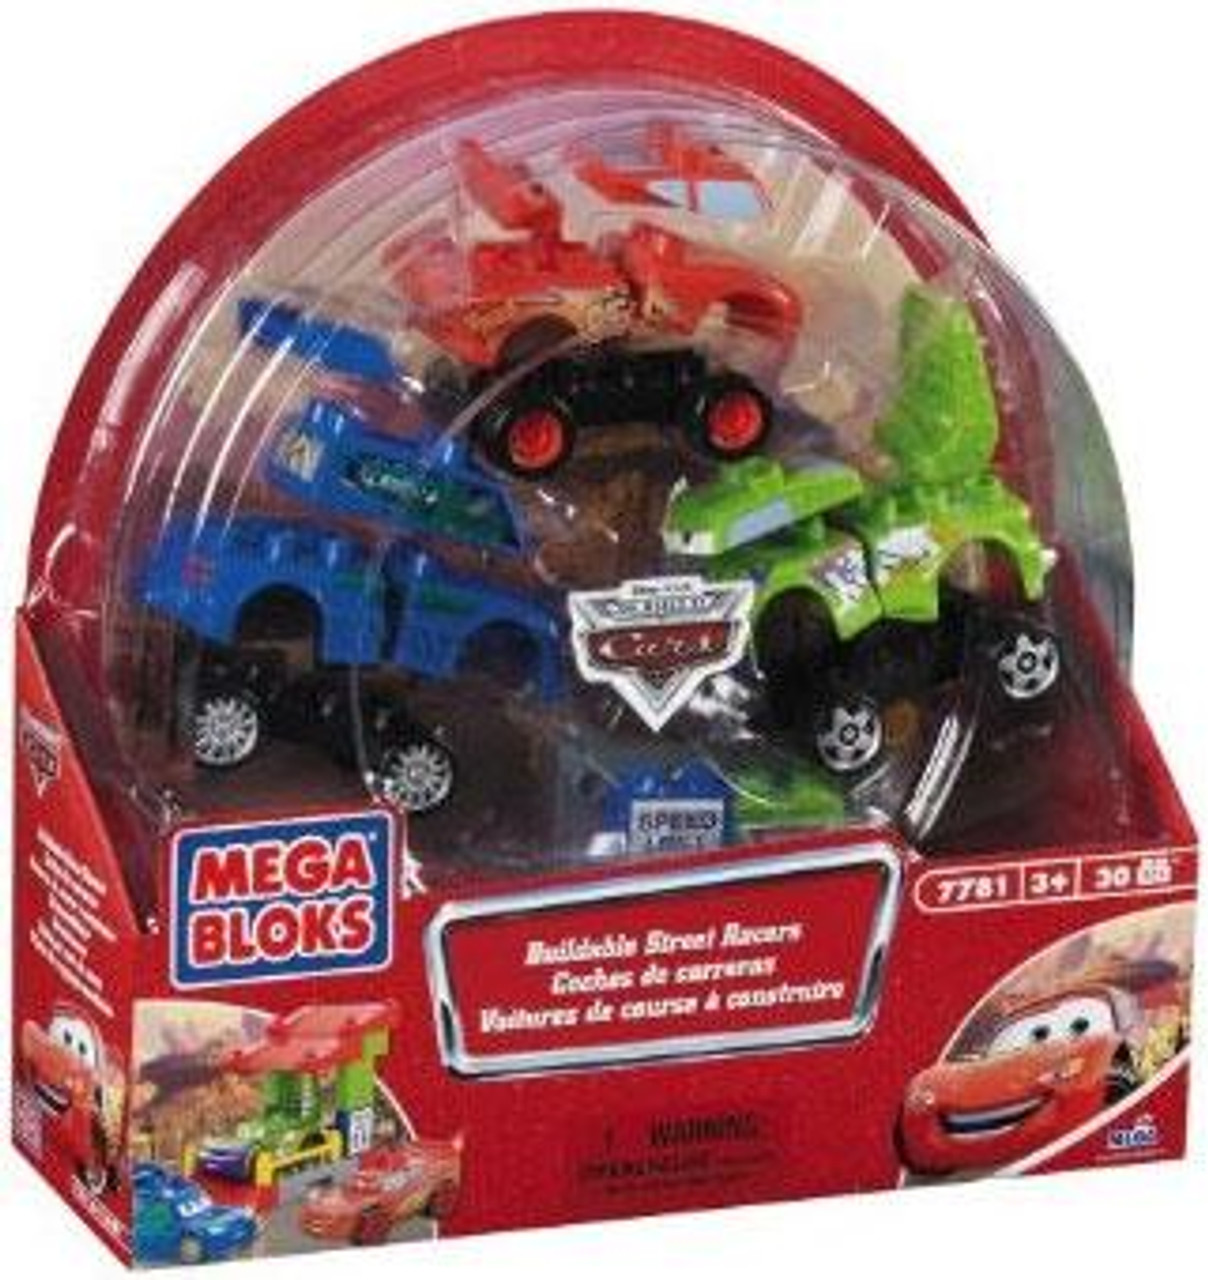 Mega Bloks Disney Cars The World of Cars Buildable Street Racers Set #7781